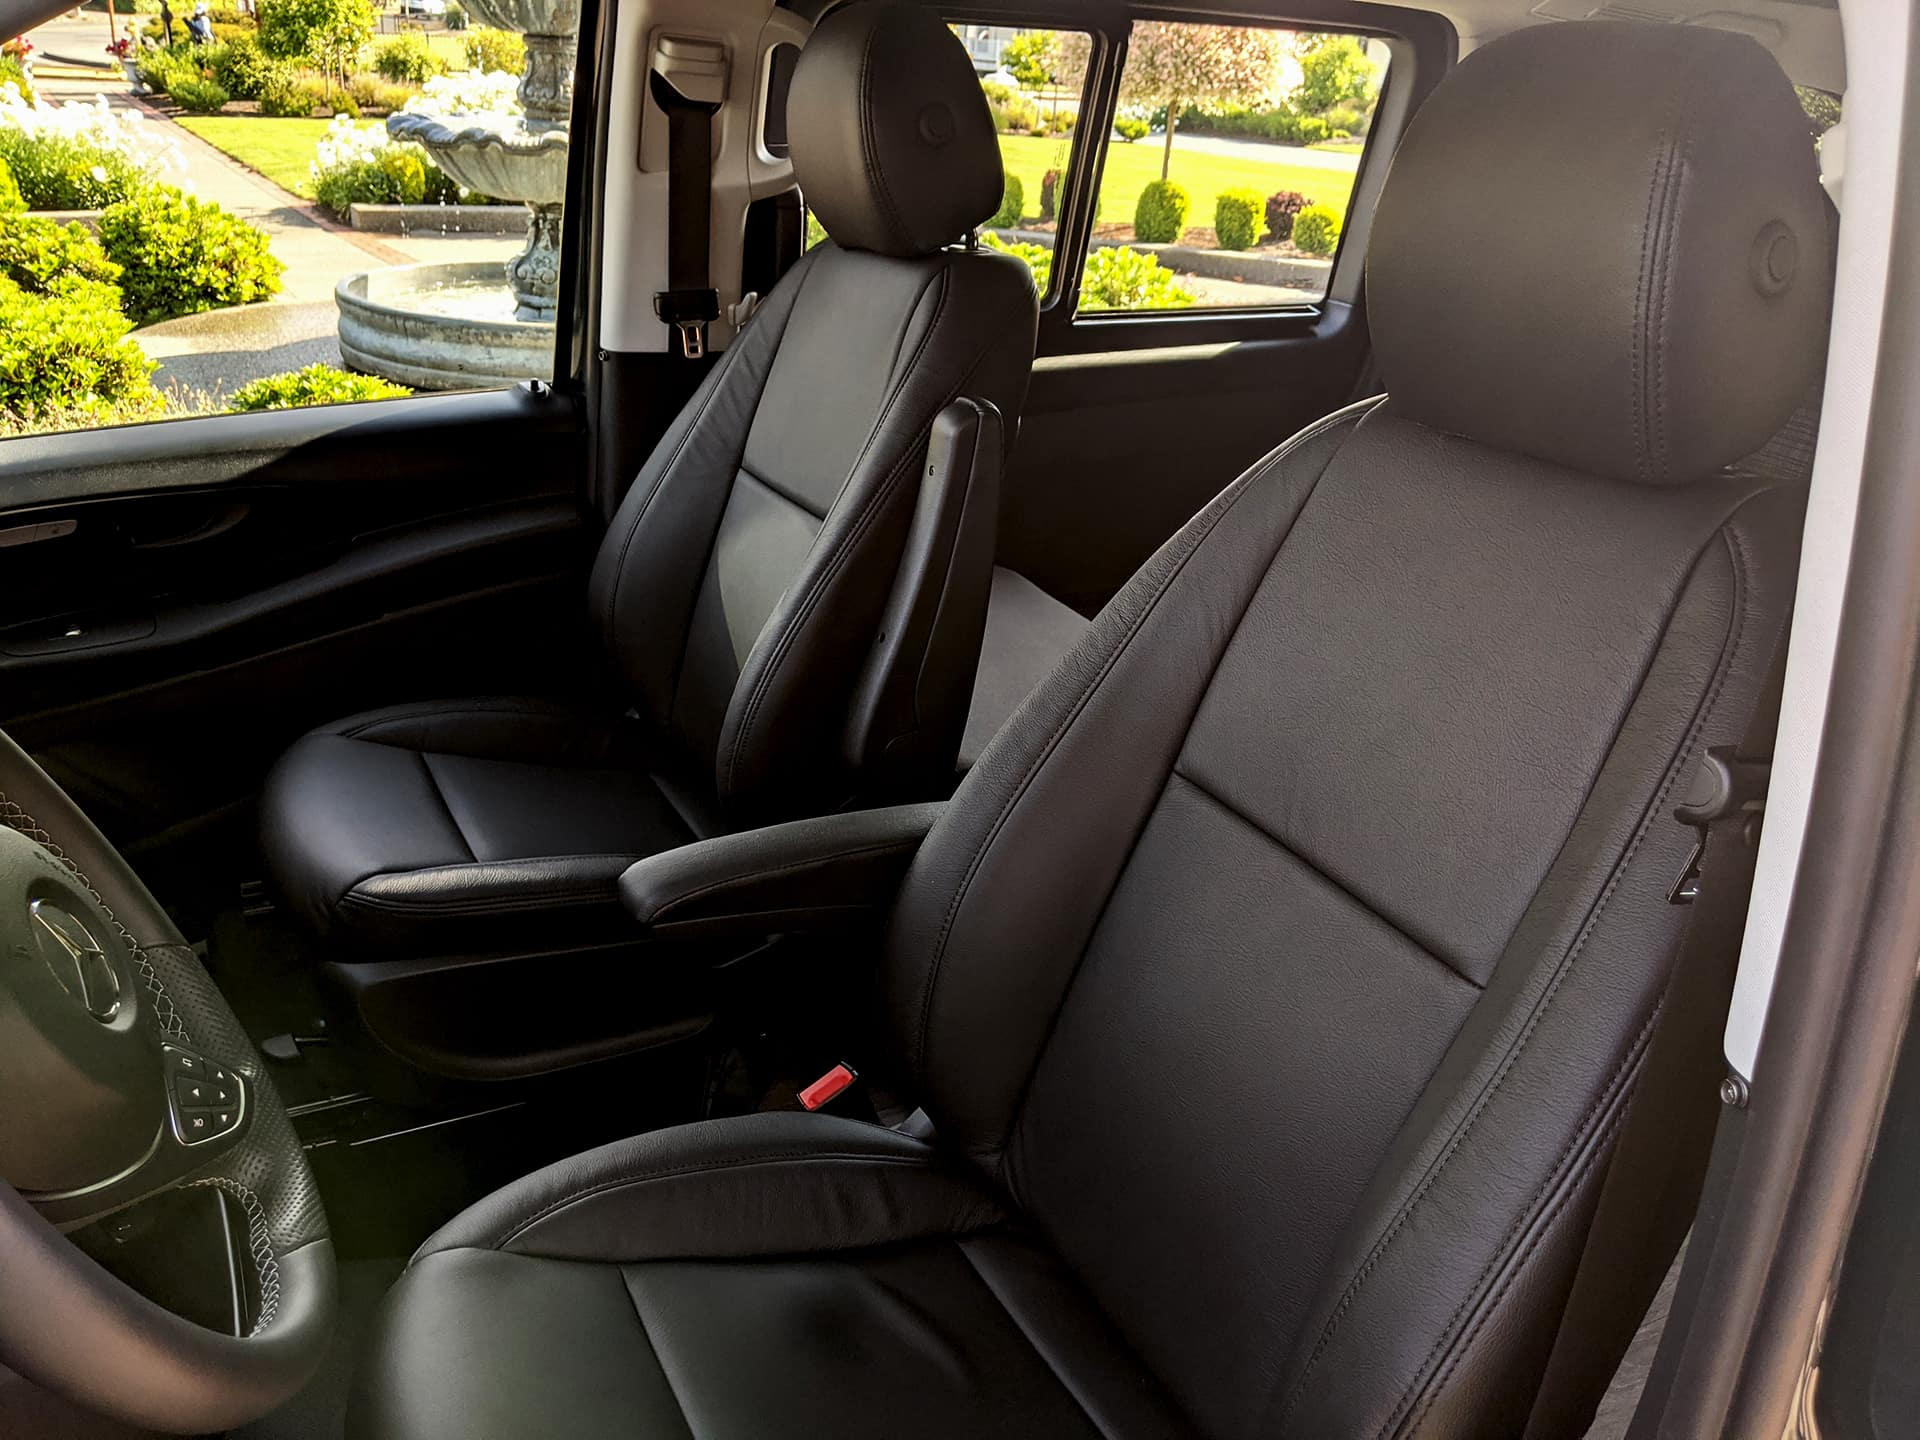 Optional Leather Seats for Backroad Camper Van